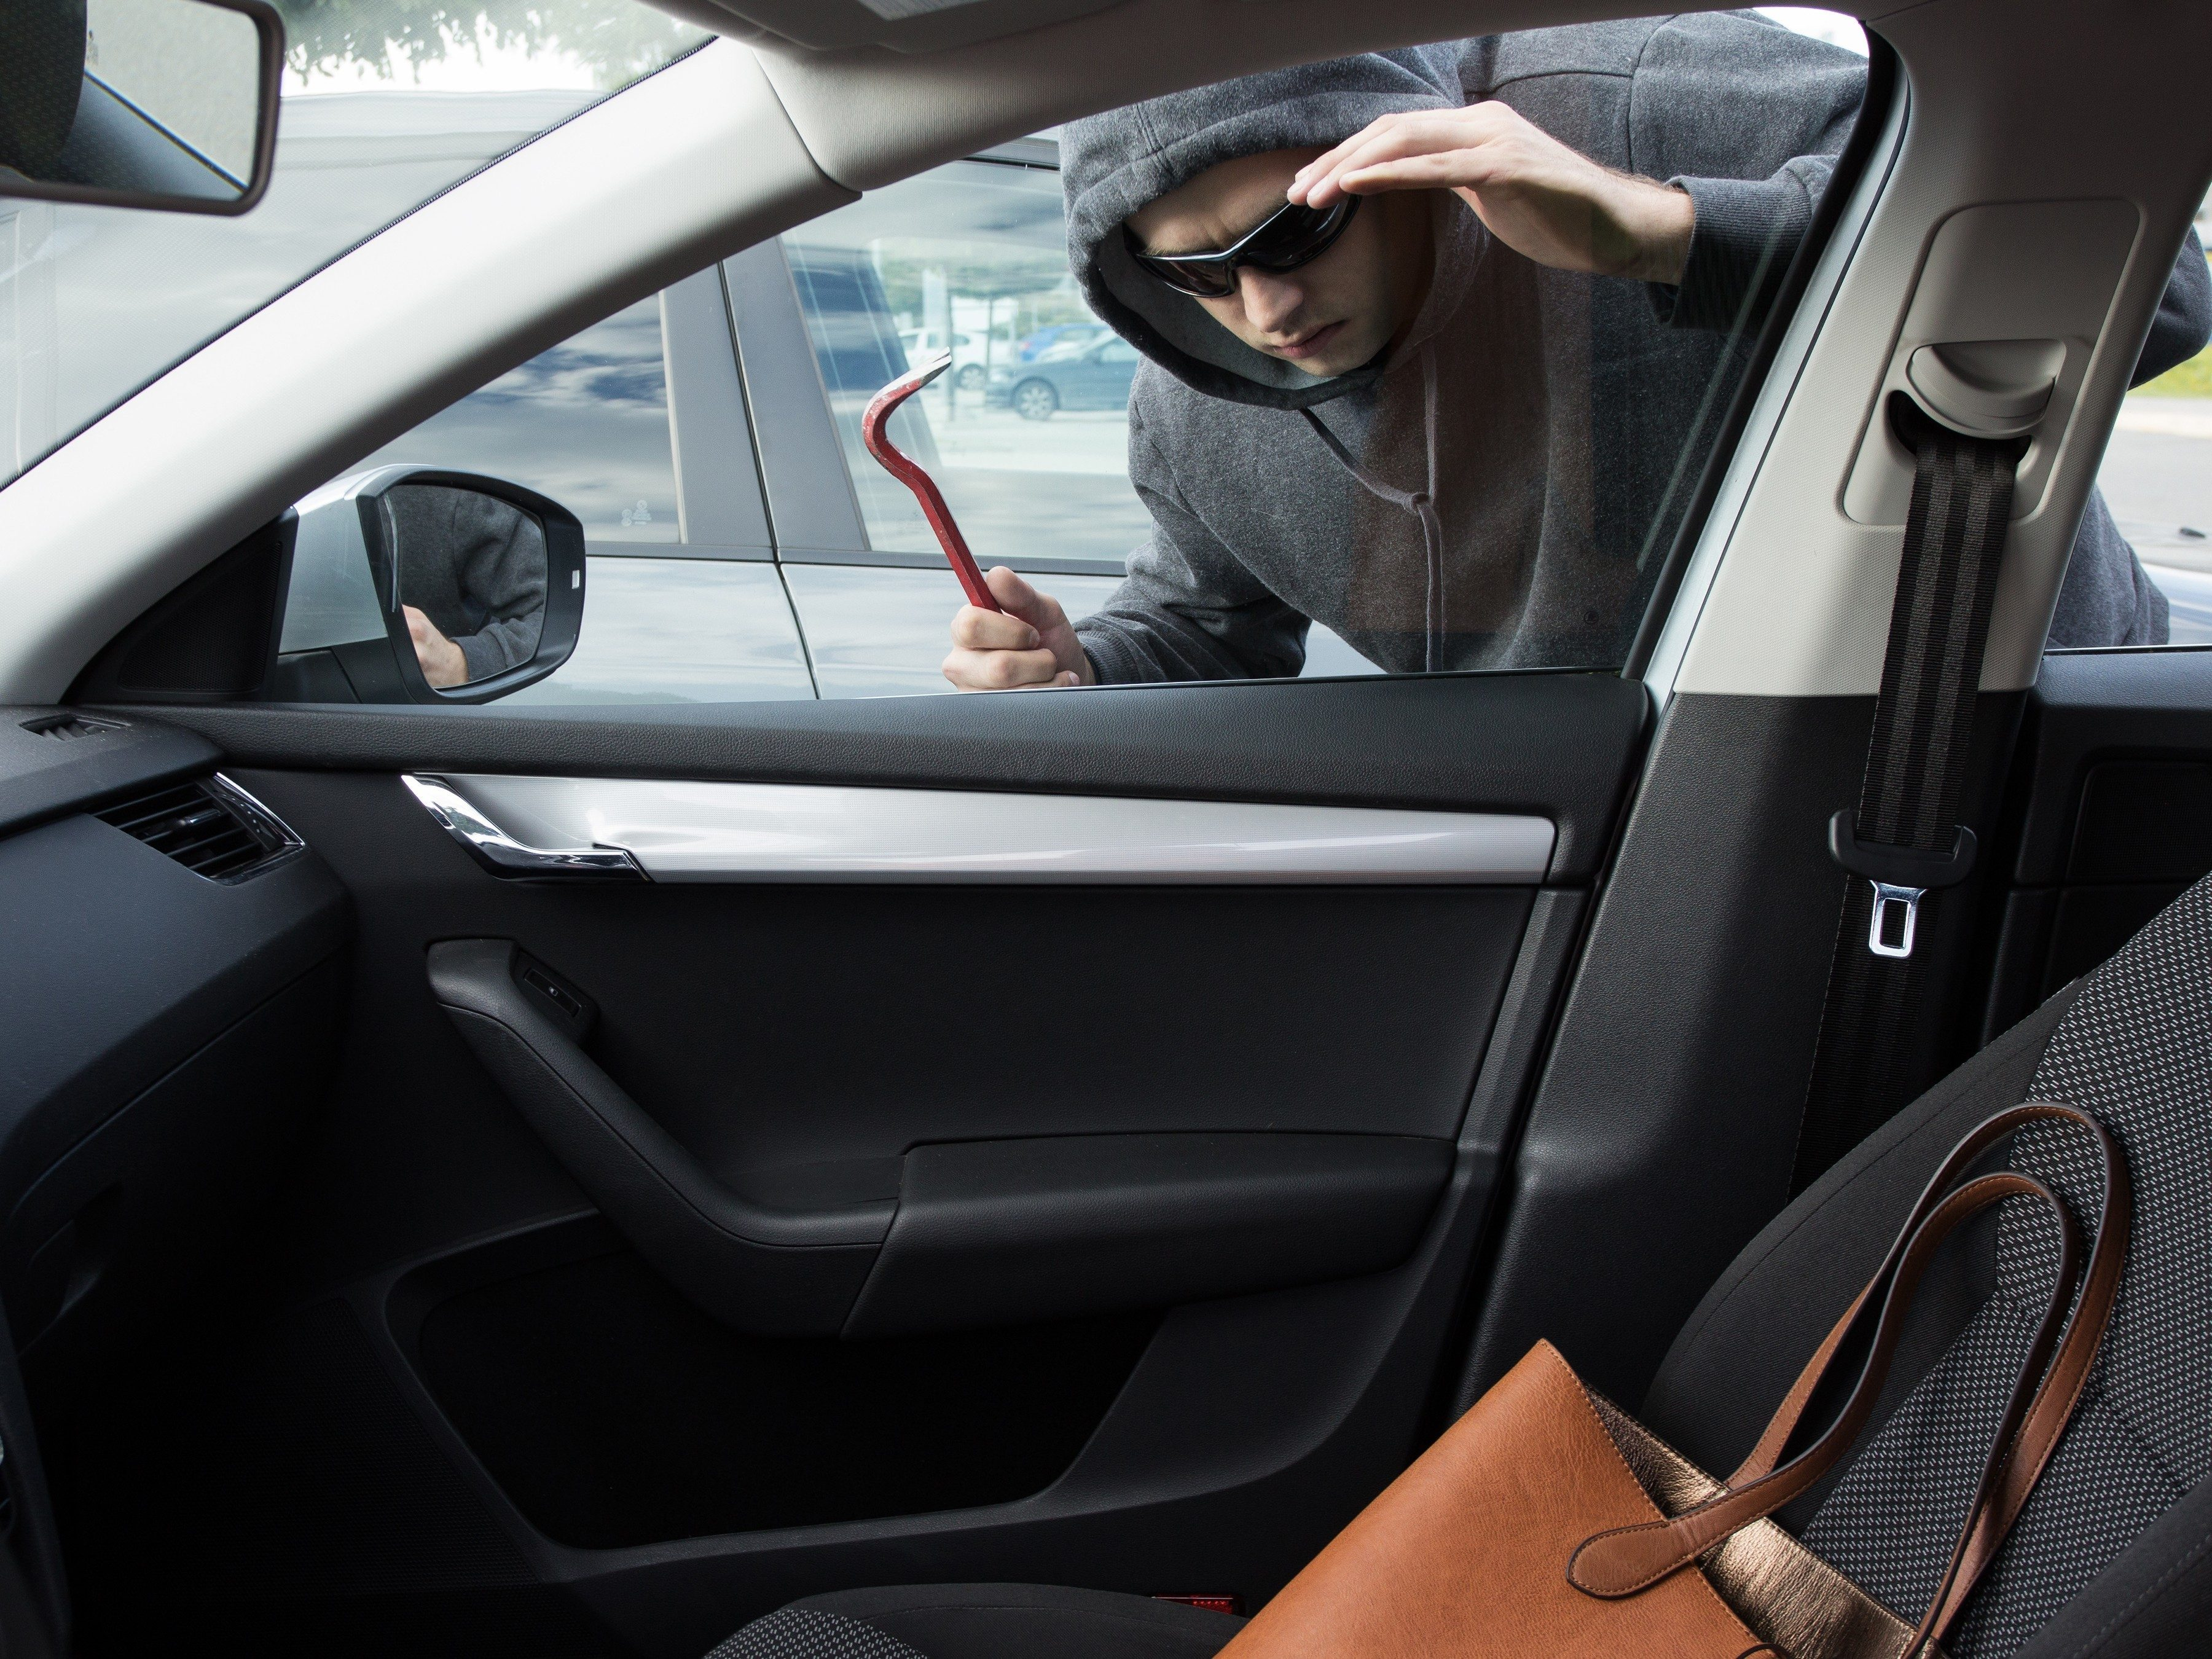 Car security strategy #2:Keep your valuables out of sight